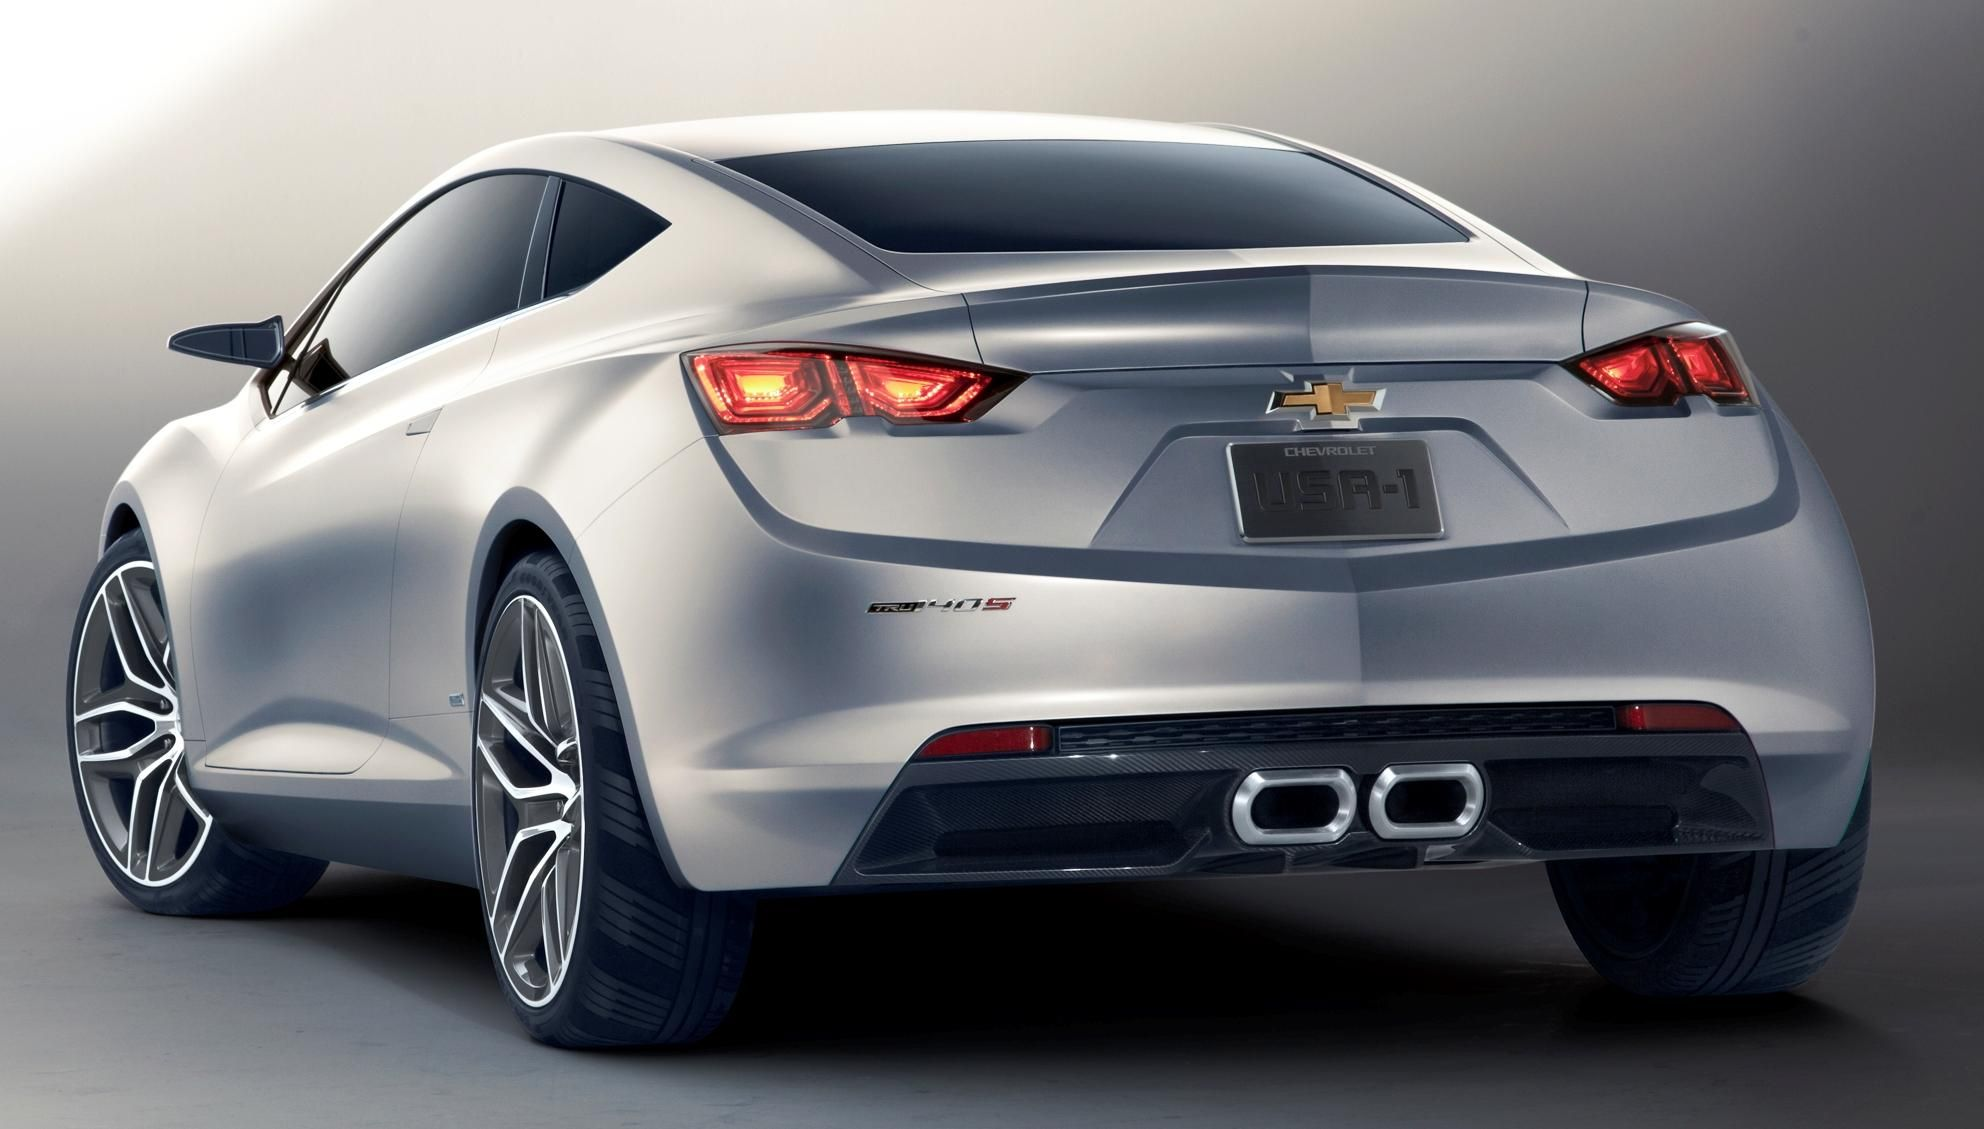 Chevy Concept Cars Wallpaper HD Images - http://hdcarwallfx.com ...